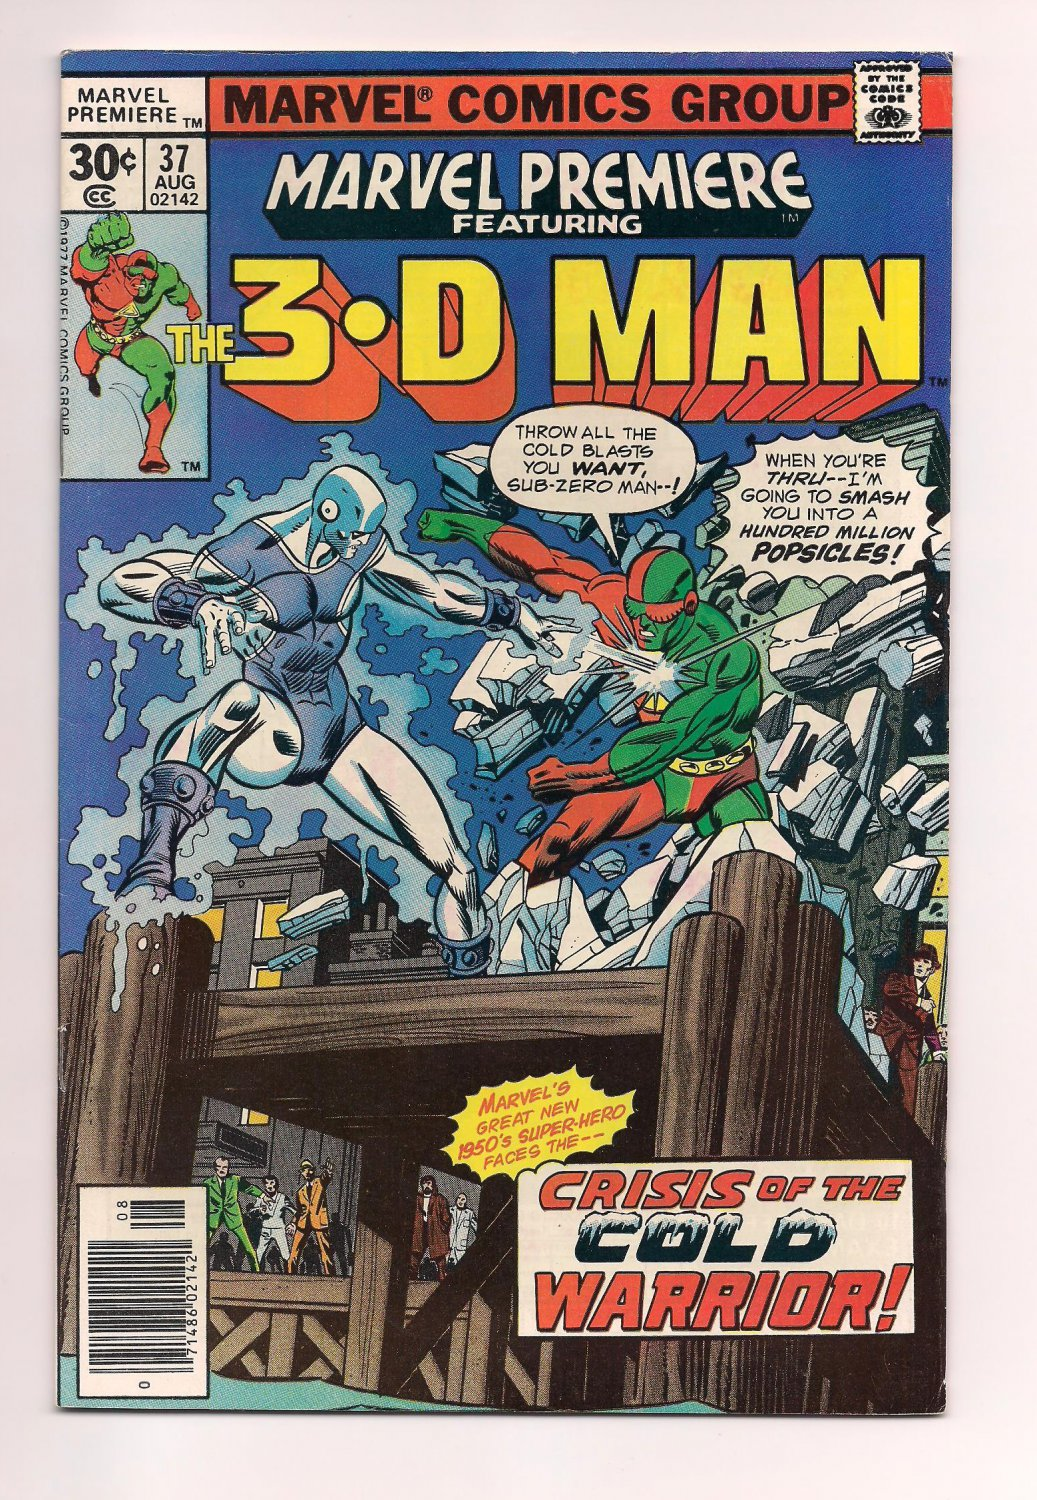 Marvel Premiere #37 (1977) vf or better condition comic (sh3) featuring 3-D Man